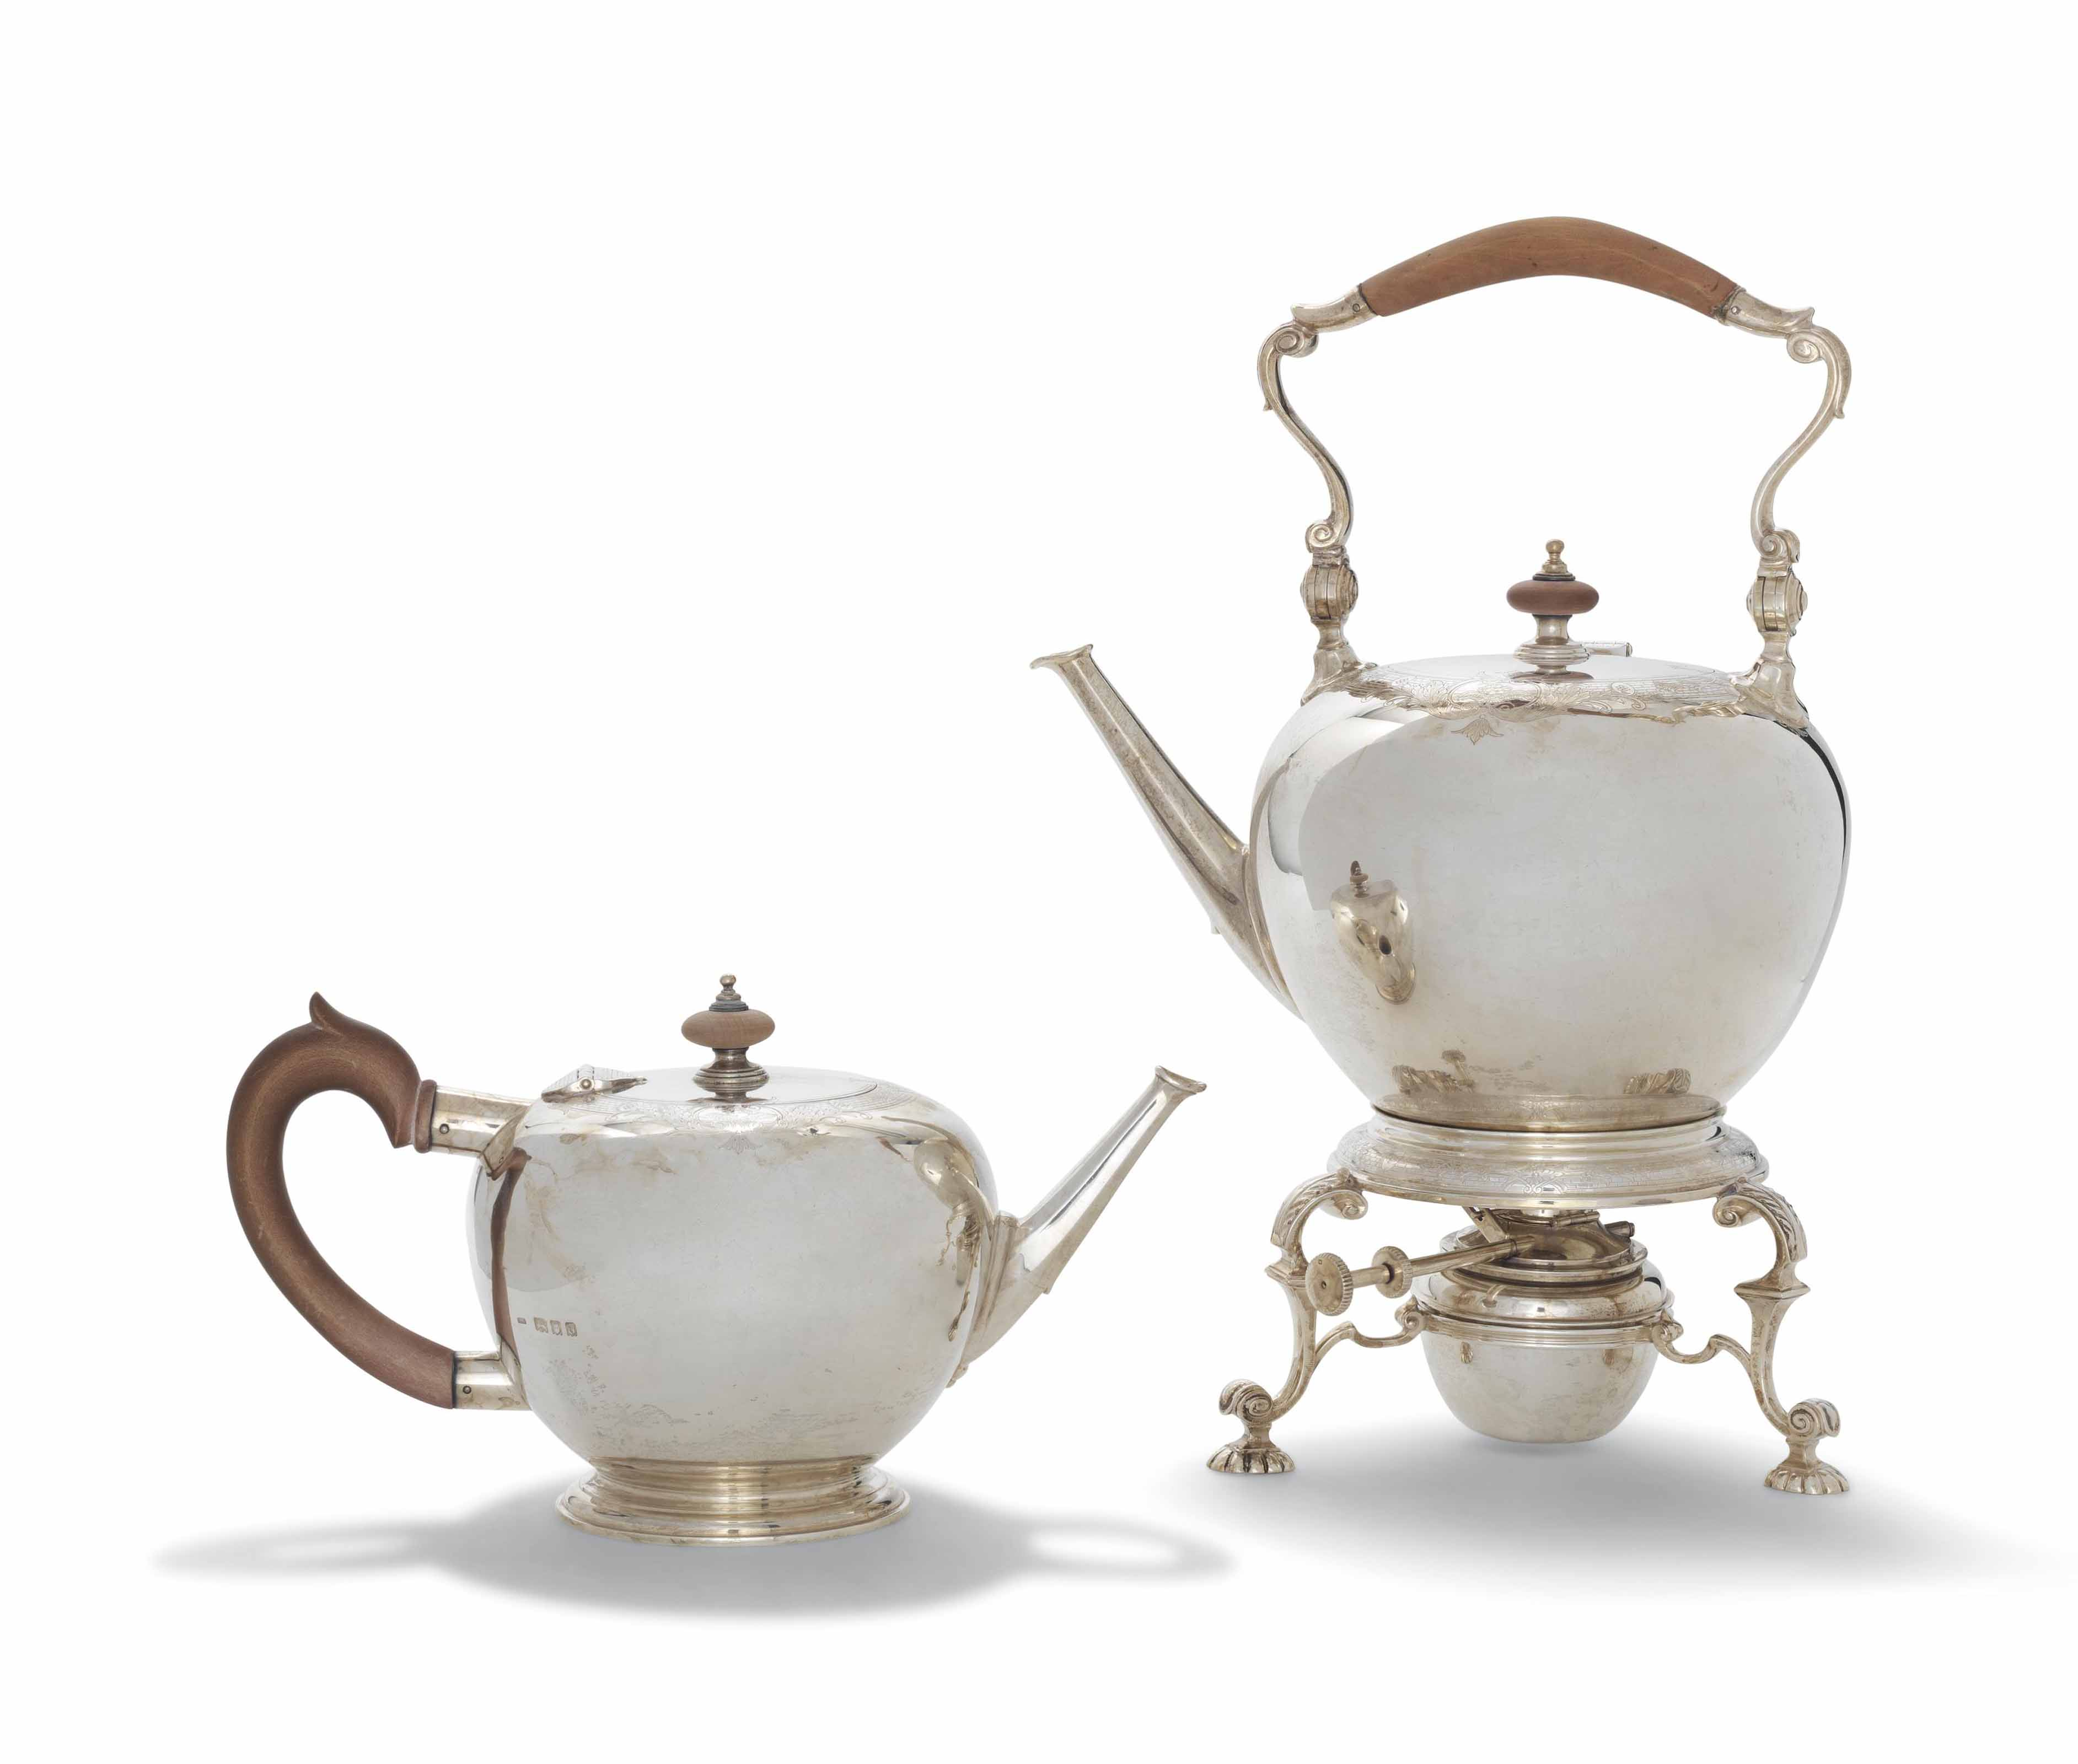 A GEORGE V SILVER KETTLE, STAND AND LAMP AND TEAPOT